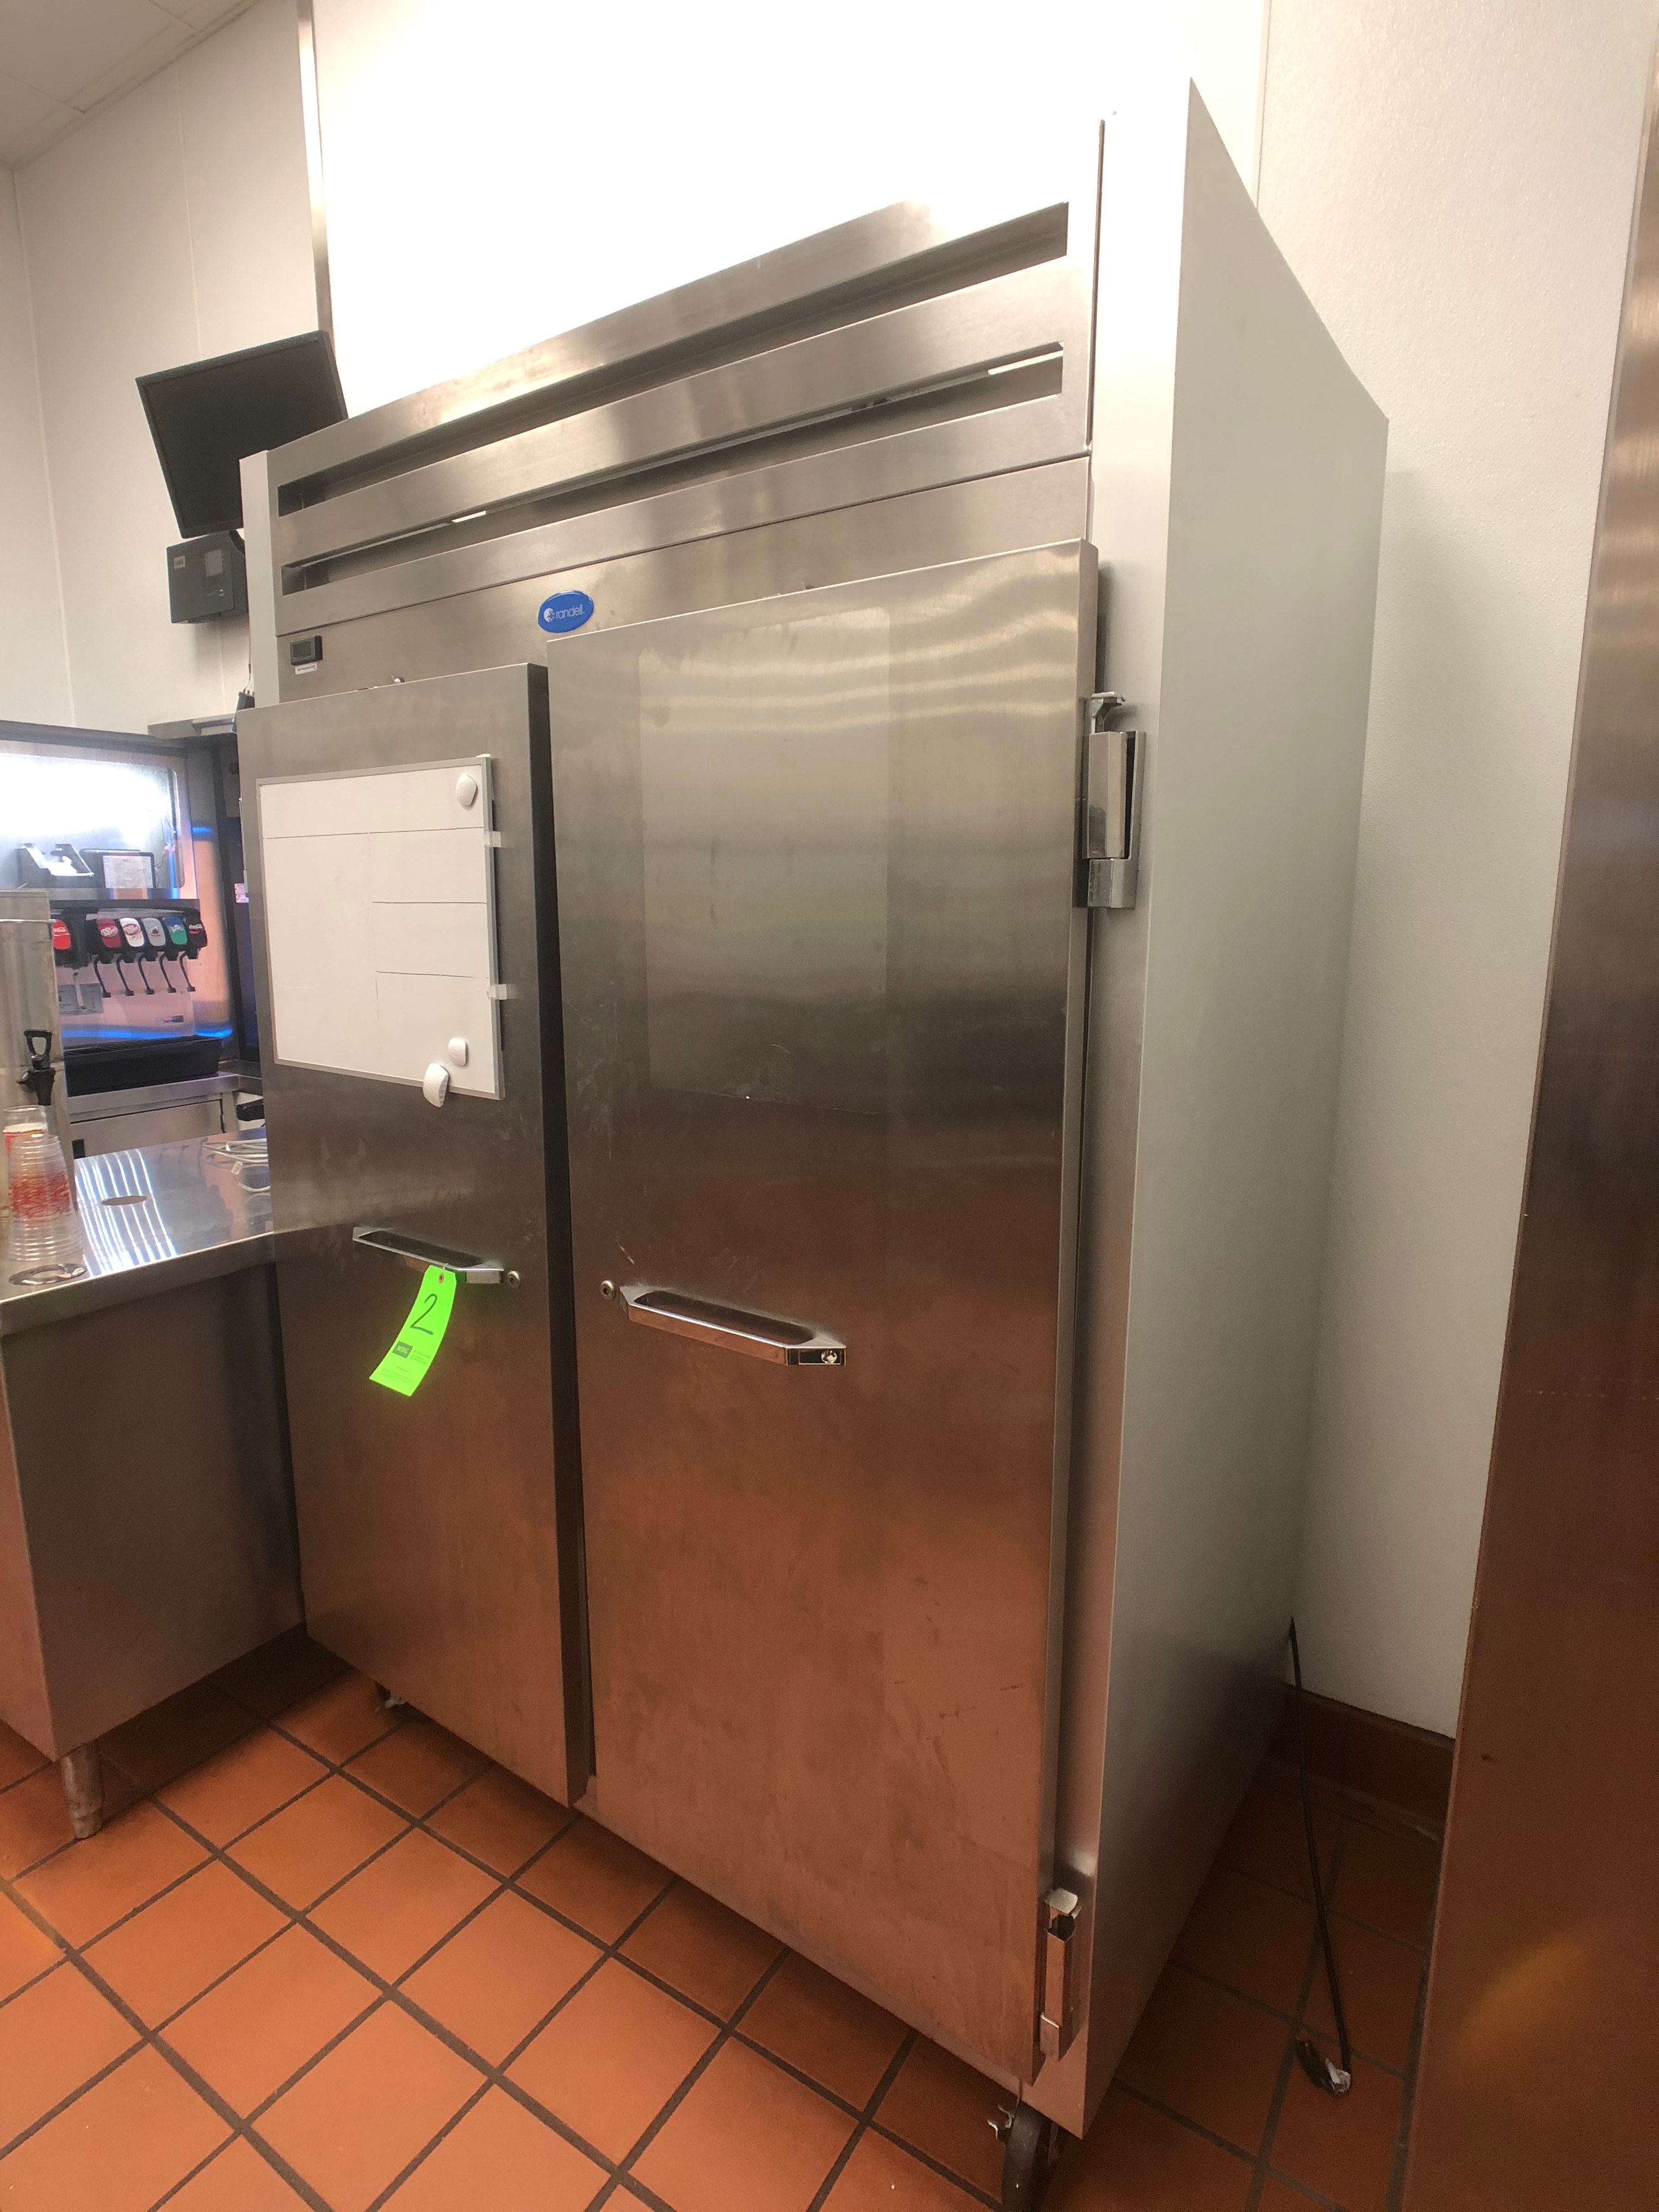 Randell 46 CuFt Reach-In S/S Refrigerator, Model 2020, S/N W858501-1, 2-Door, Mounted on Casters - Image 4 of 4